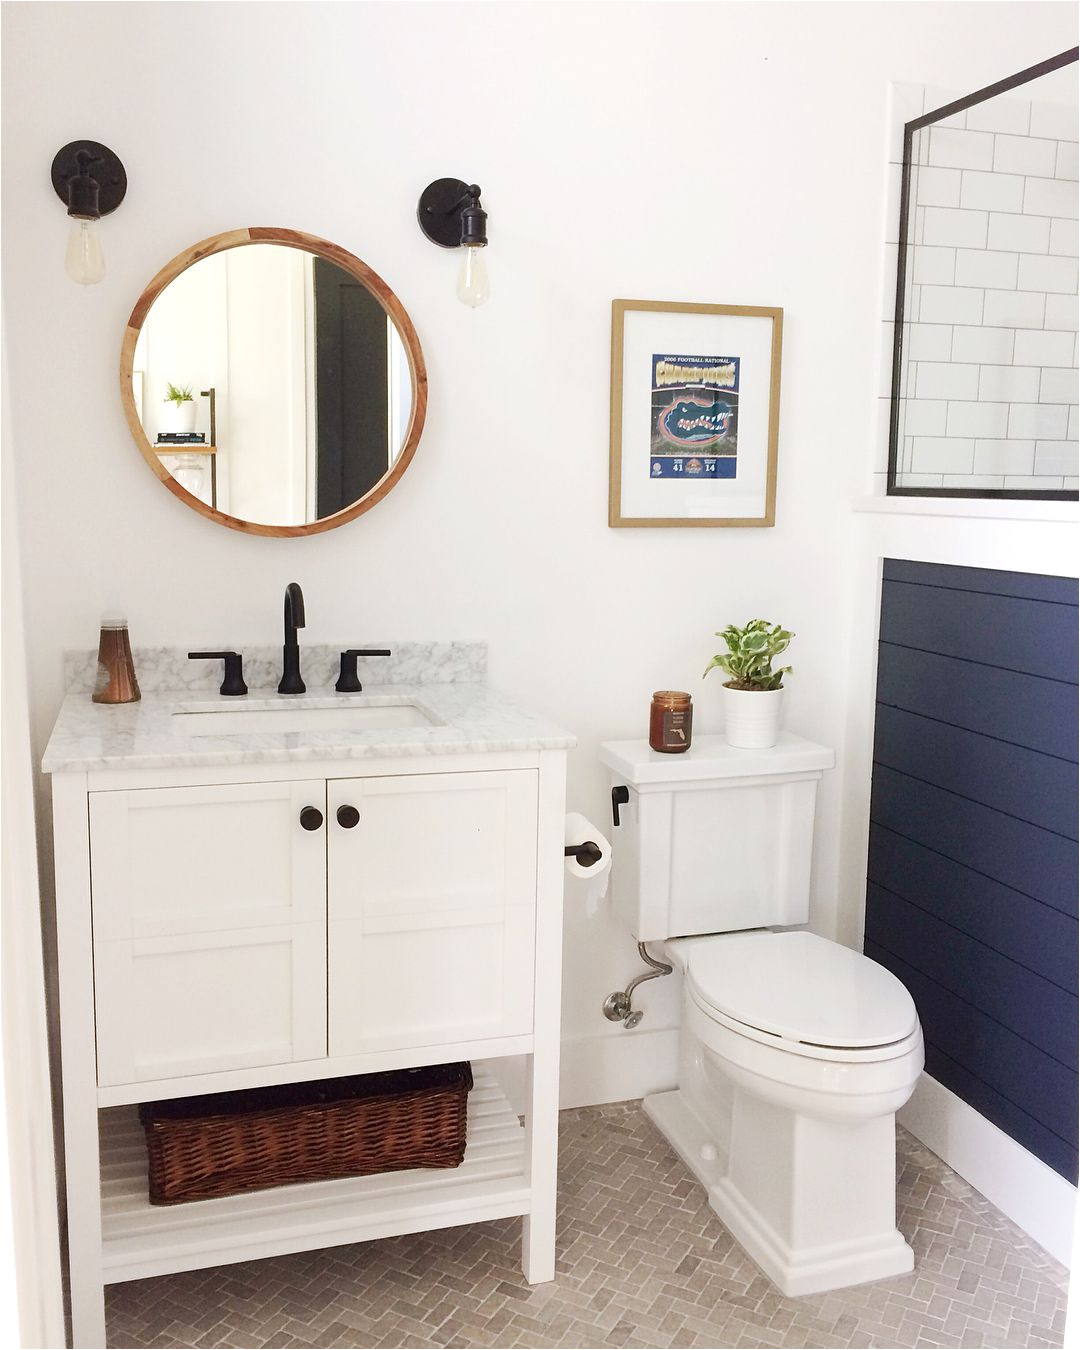 benjamin moore hale navy shiplap wall modern farmhouse bathroom